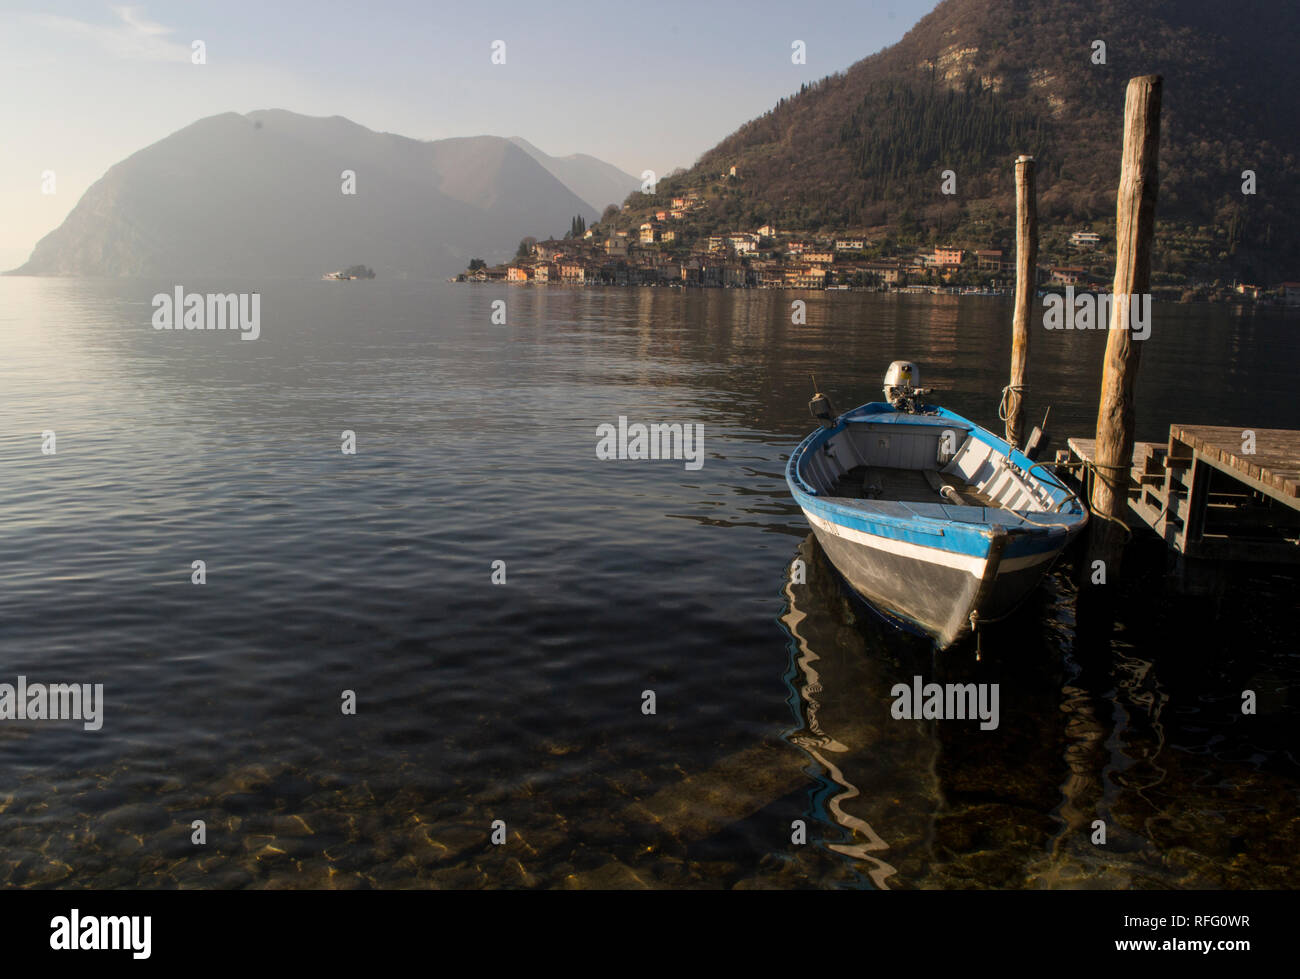 Little boat parked near a wooden pier on Iseo lake in Northern Italy, view on Monte Isola island. - Stock Image